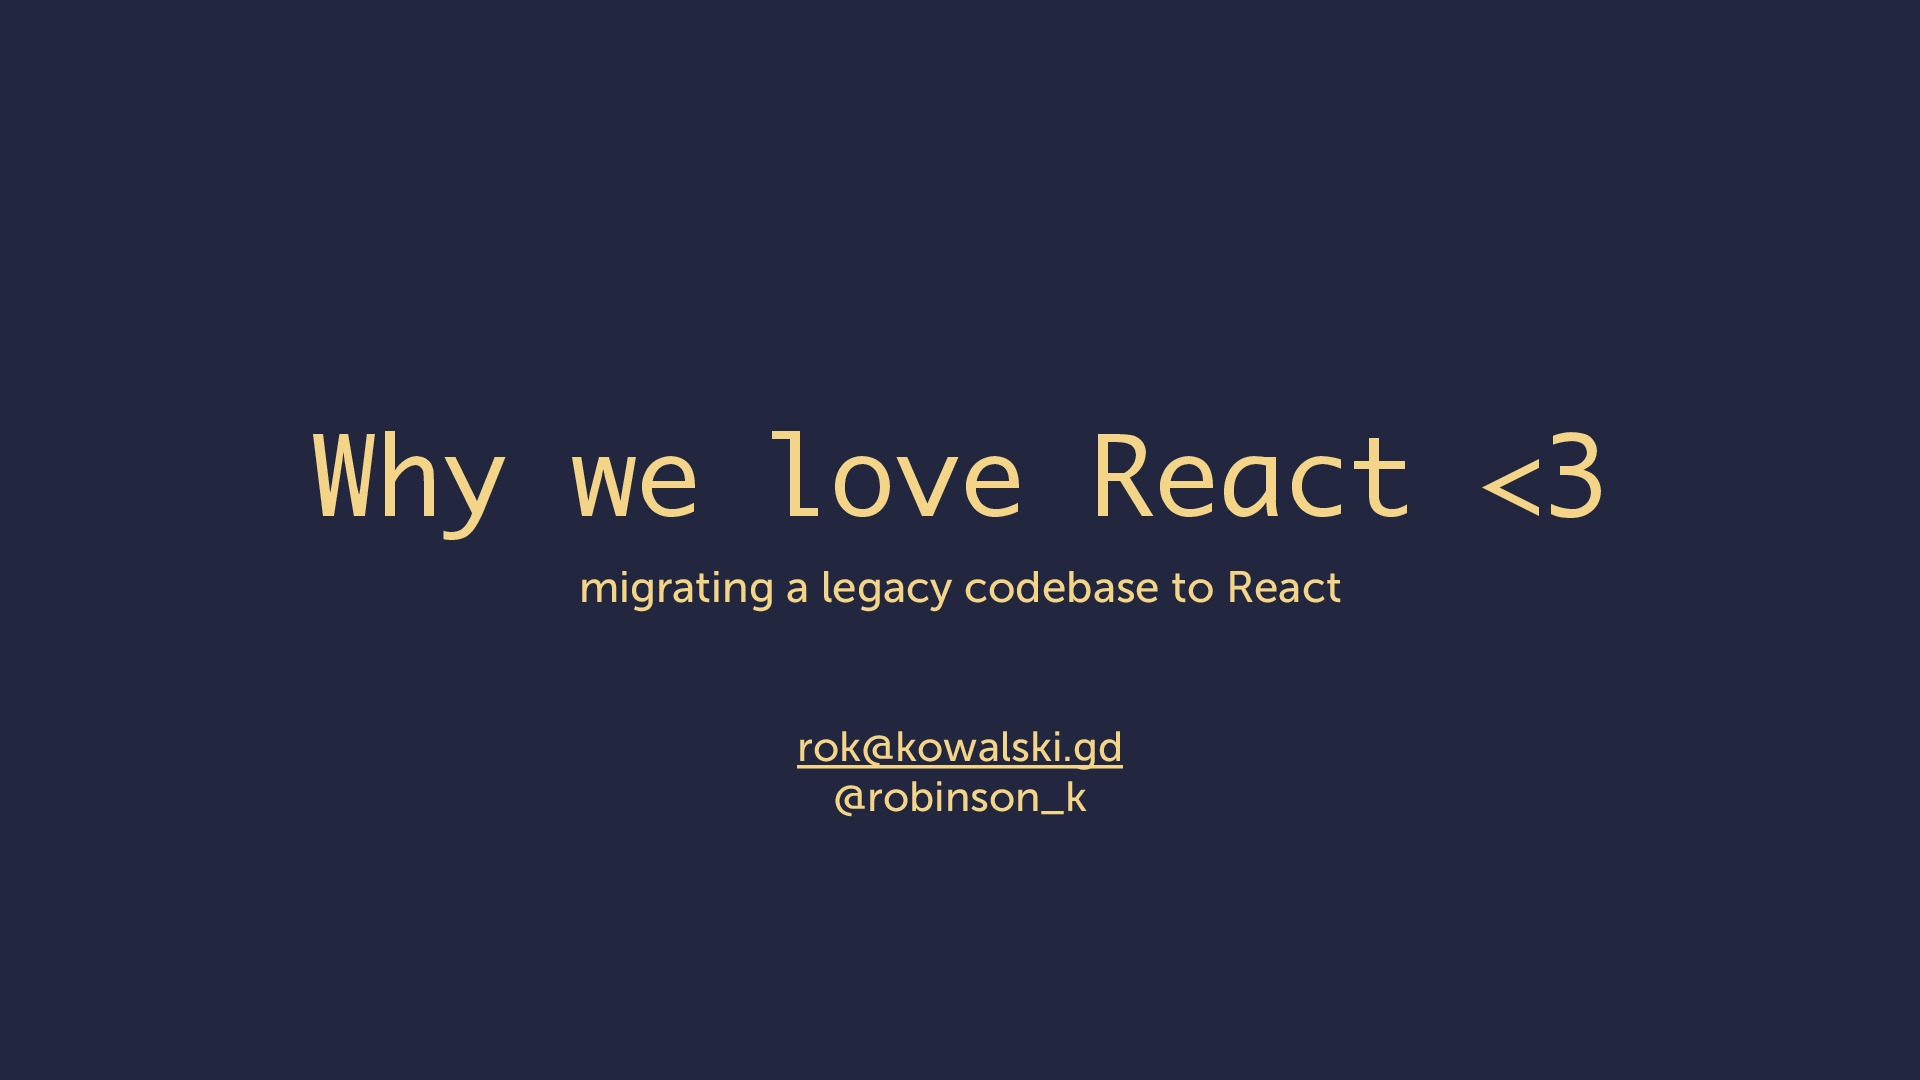 Why we love React <3 - migrating a legacy codebase to React